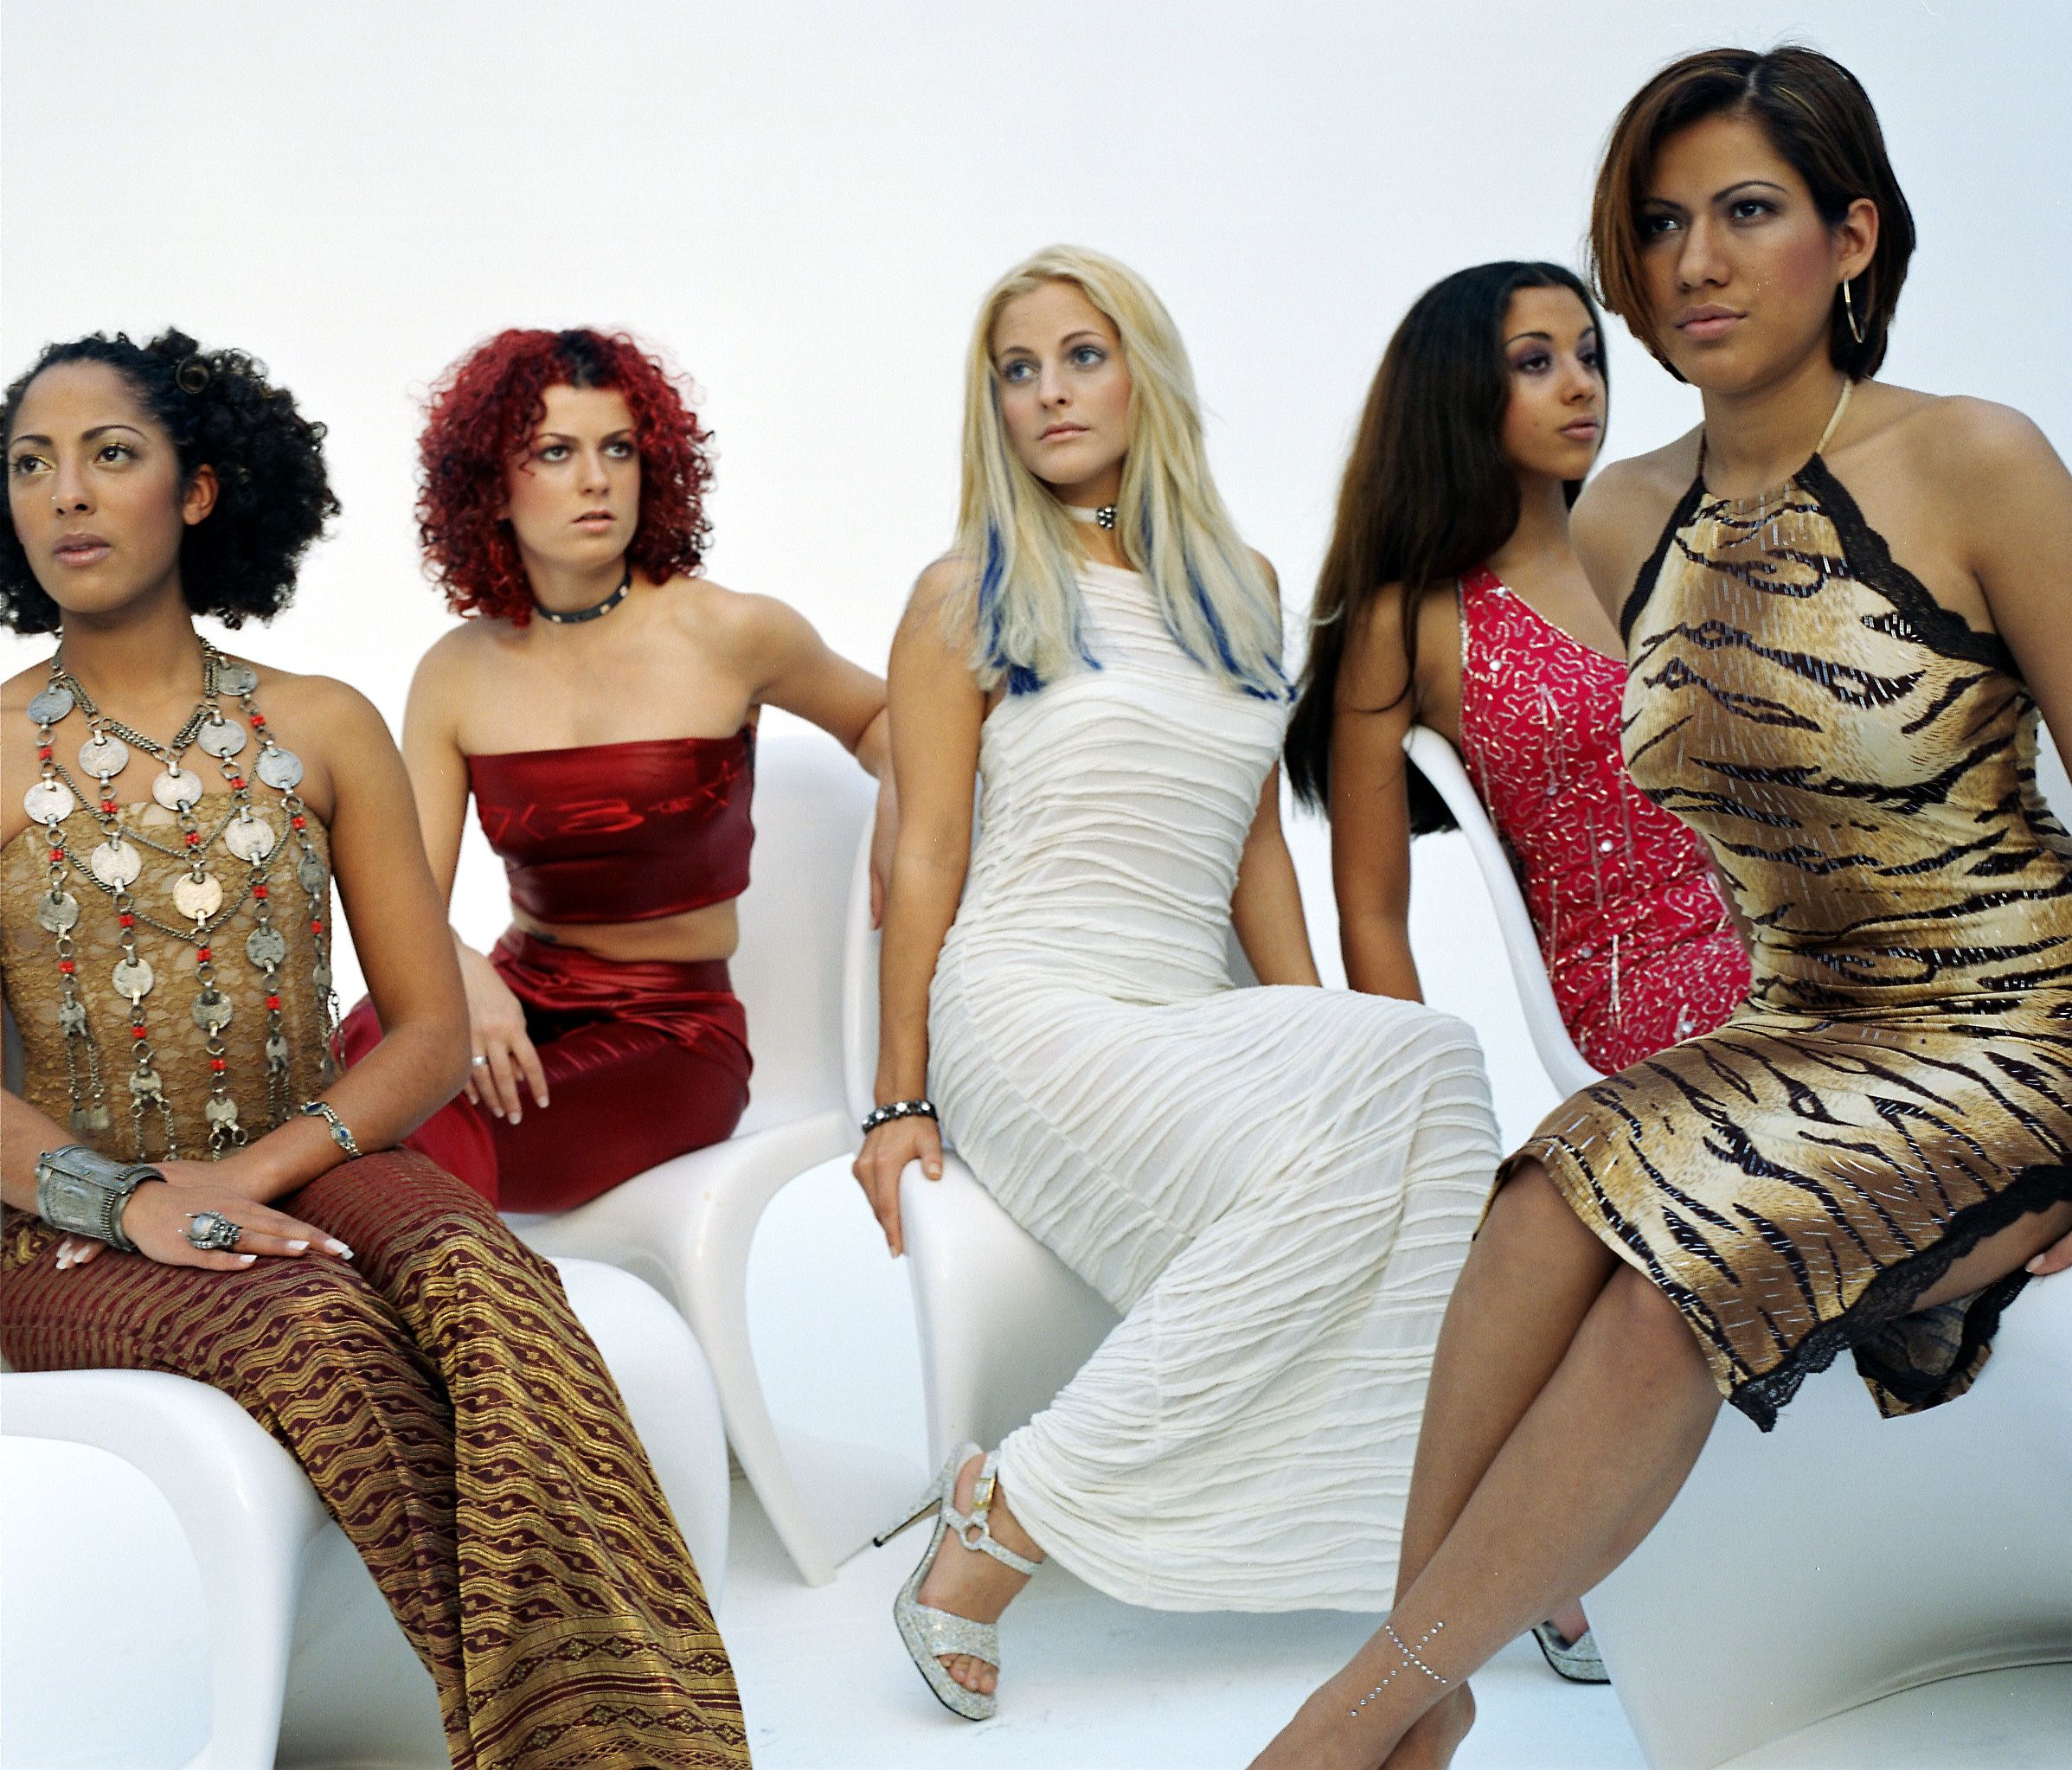 No Angels were an all-female pop band from Germany formed